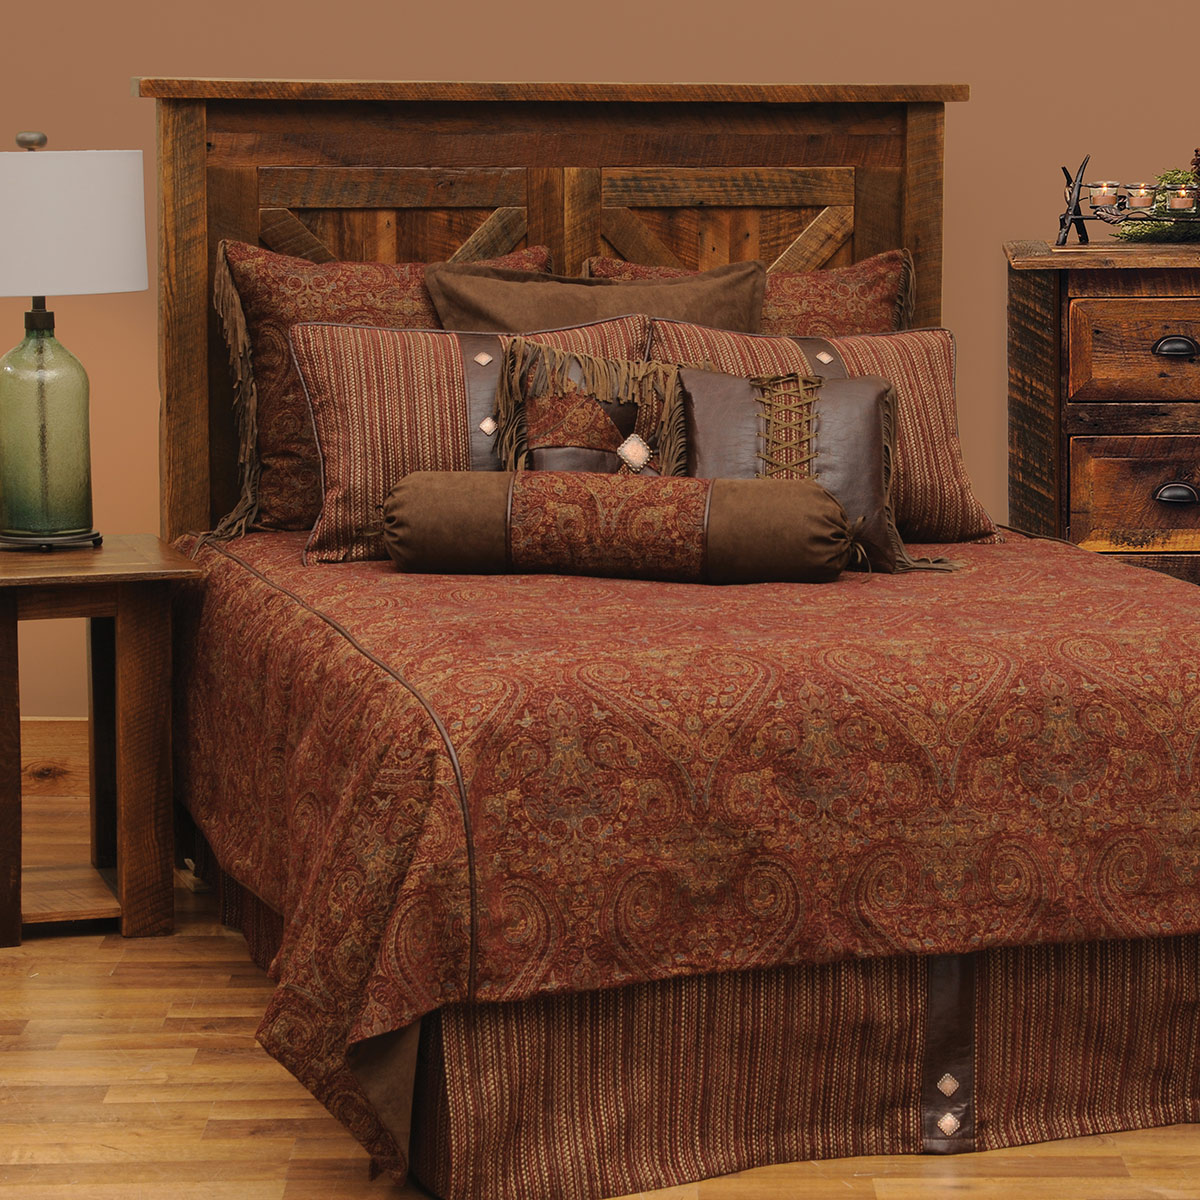 Milady II Deluxe Bed Set - Cal. King